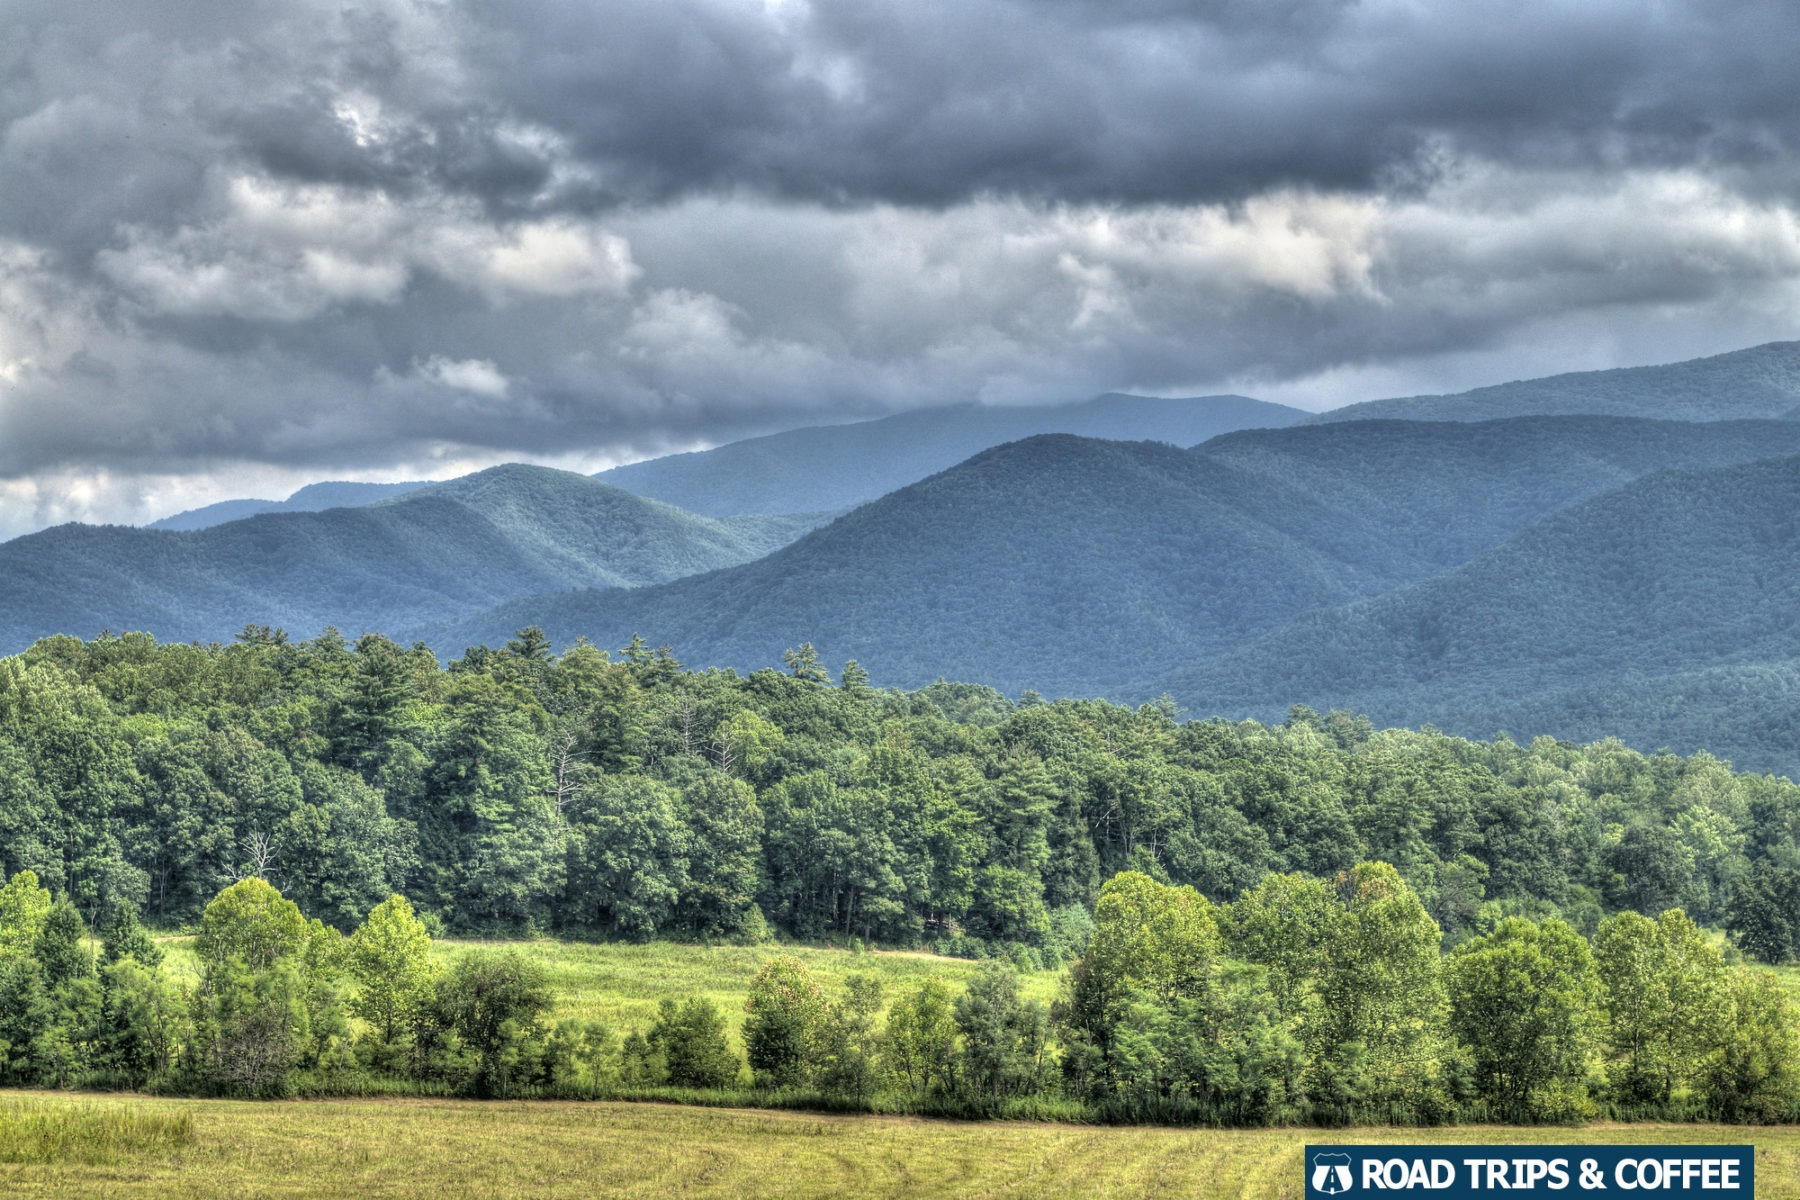 Clouds hang over the lush green landscape and distant mountains at Cades Cove in the Great Smoky Mountains National Park